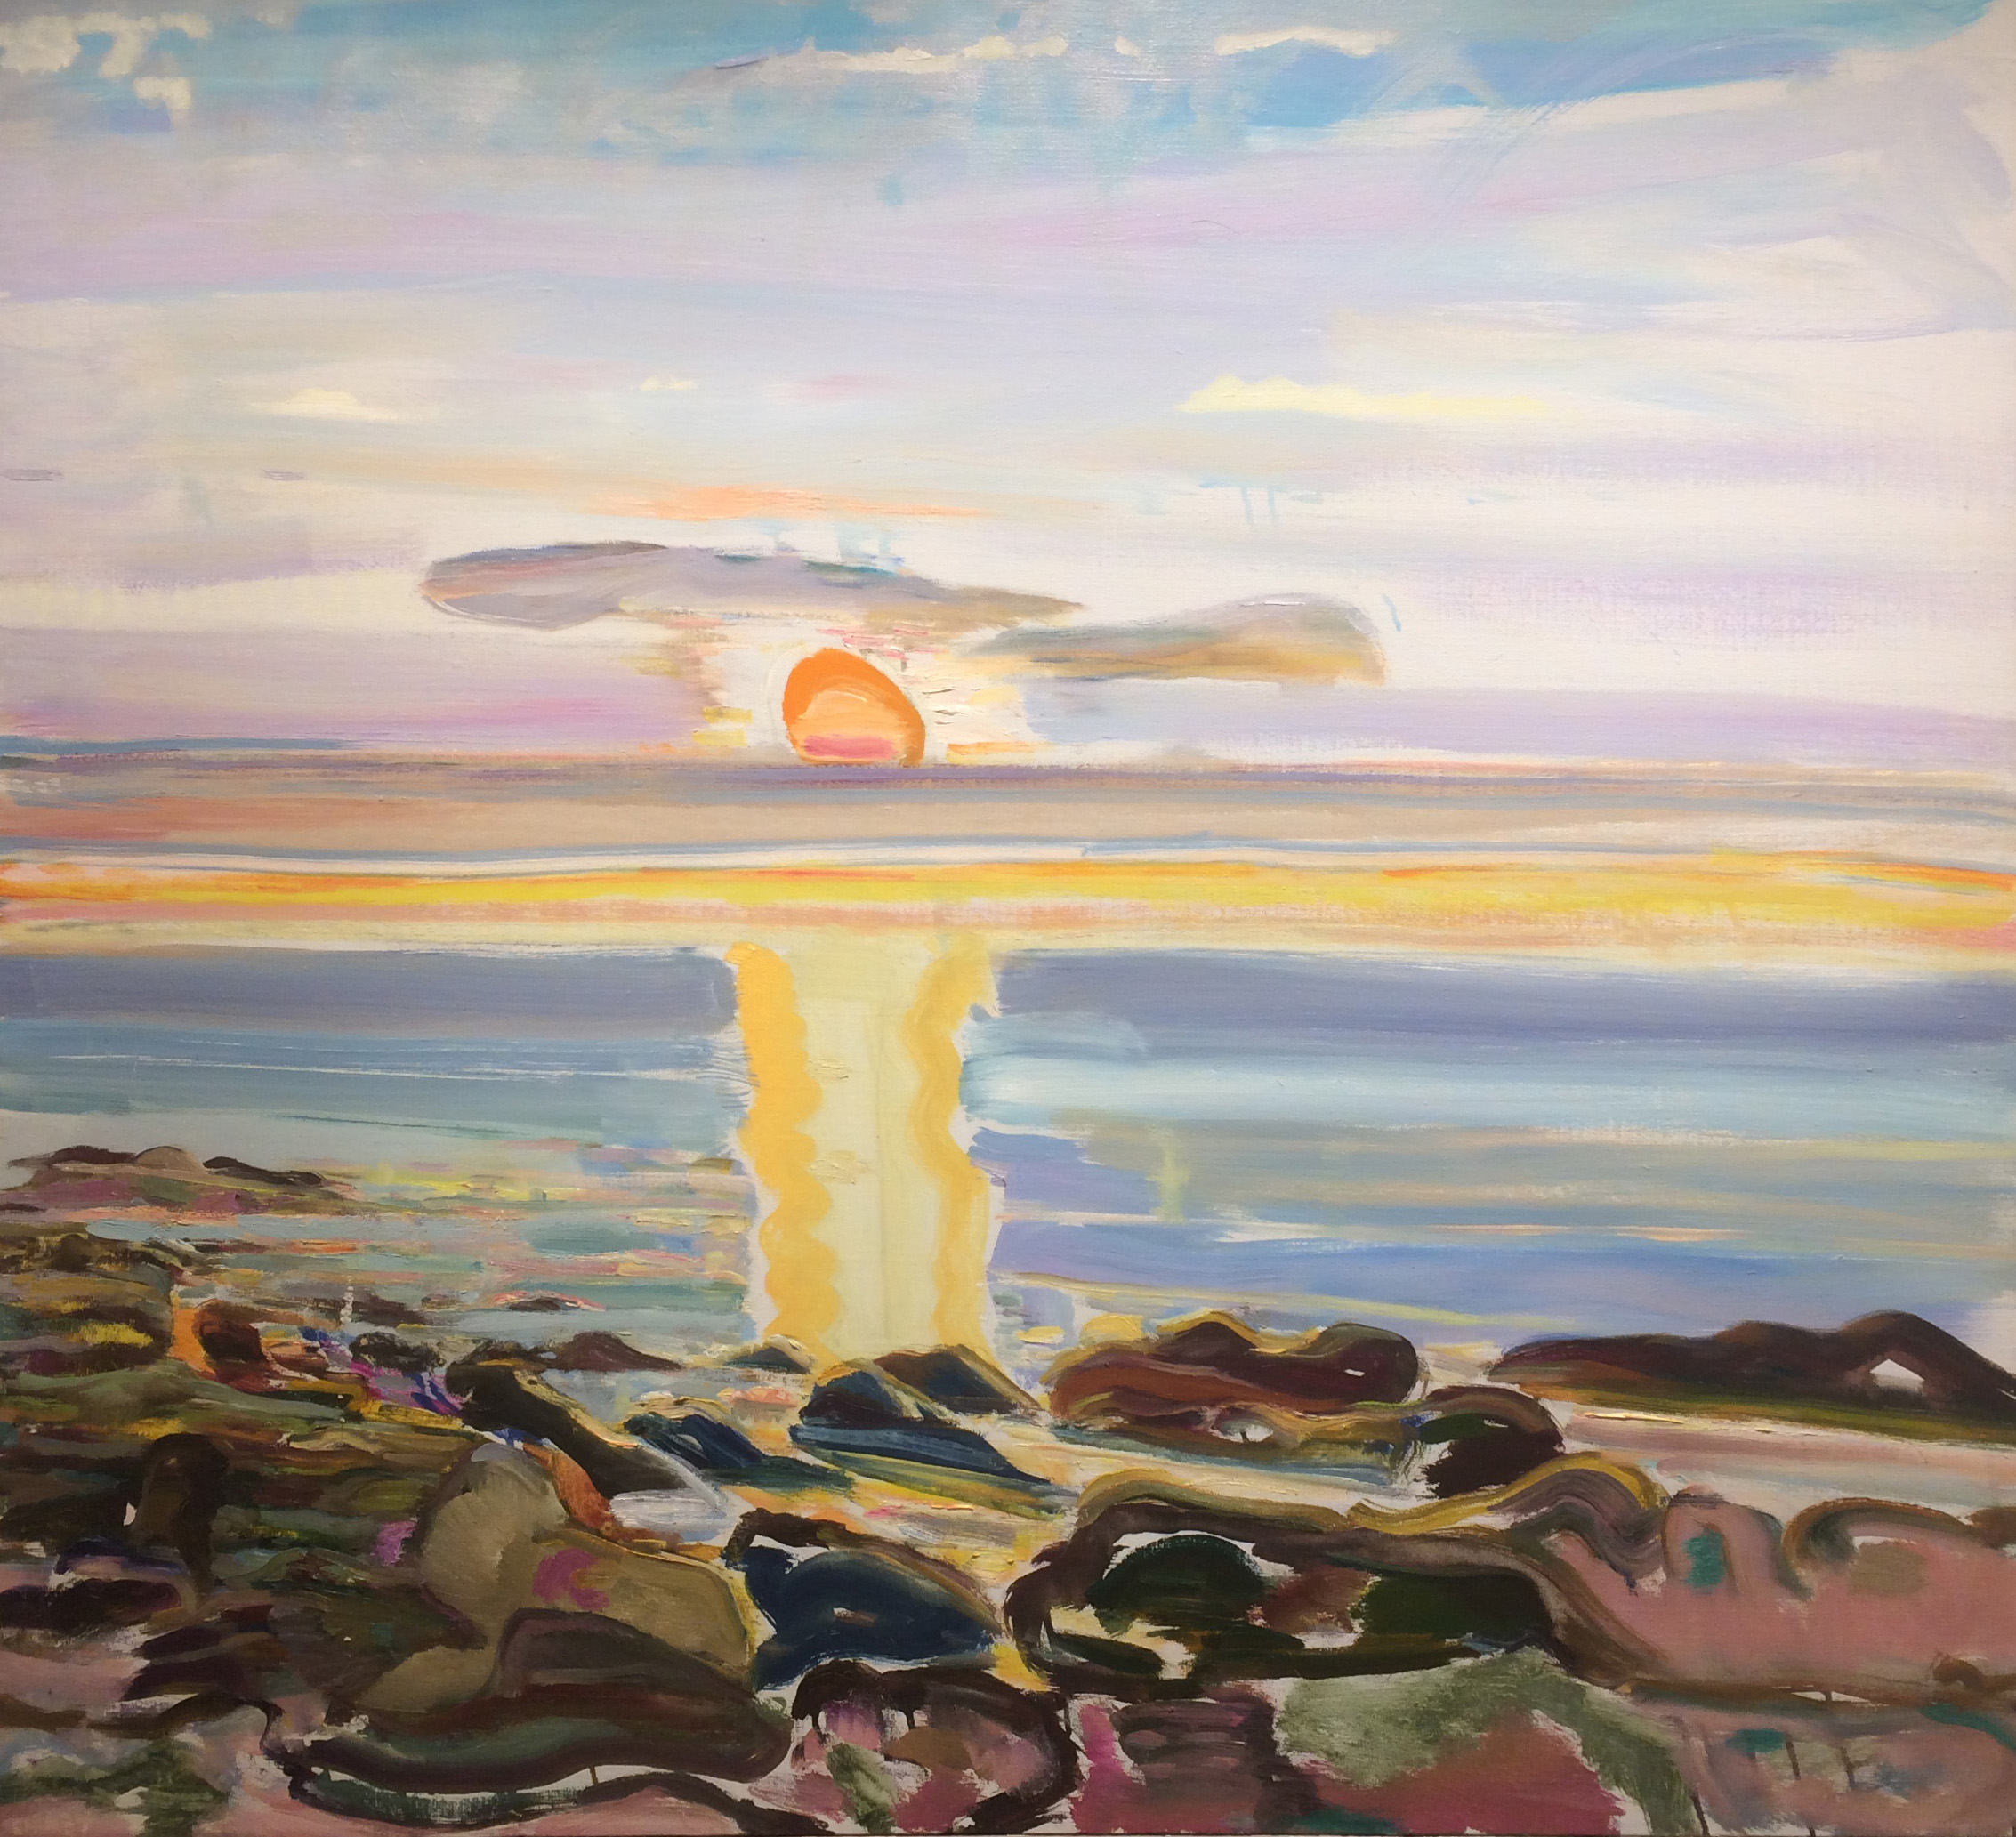 The Sun,  1980 oil on canvas, 40 x 44 inches